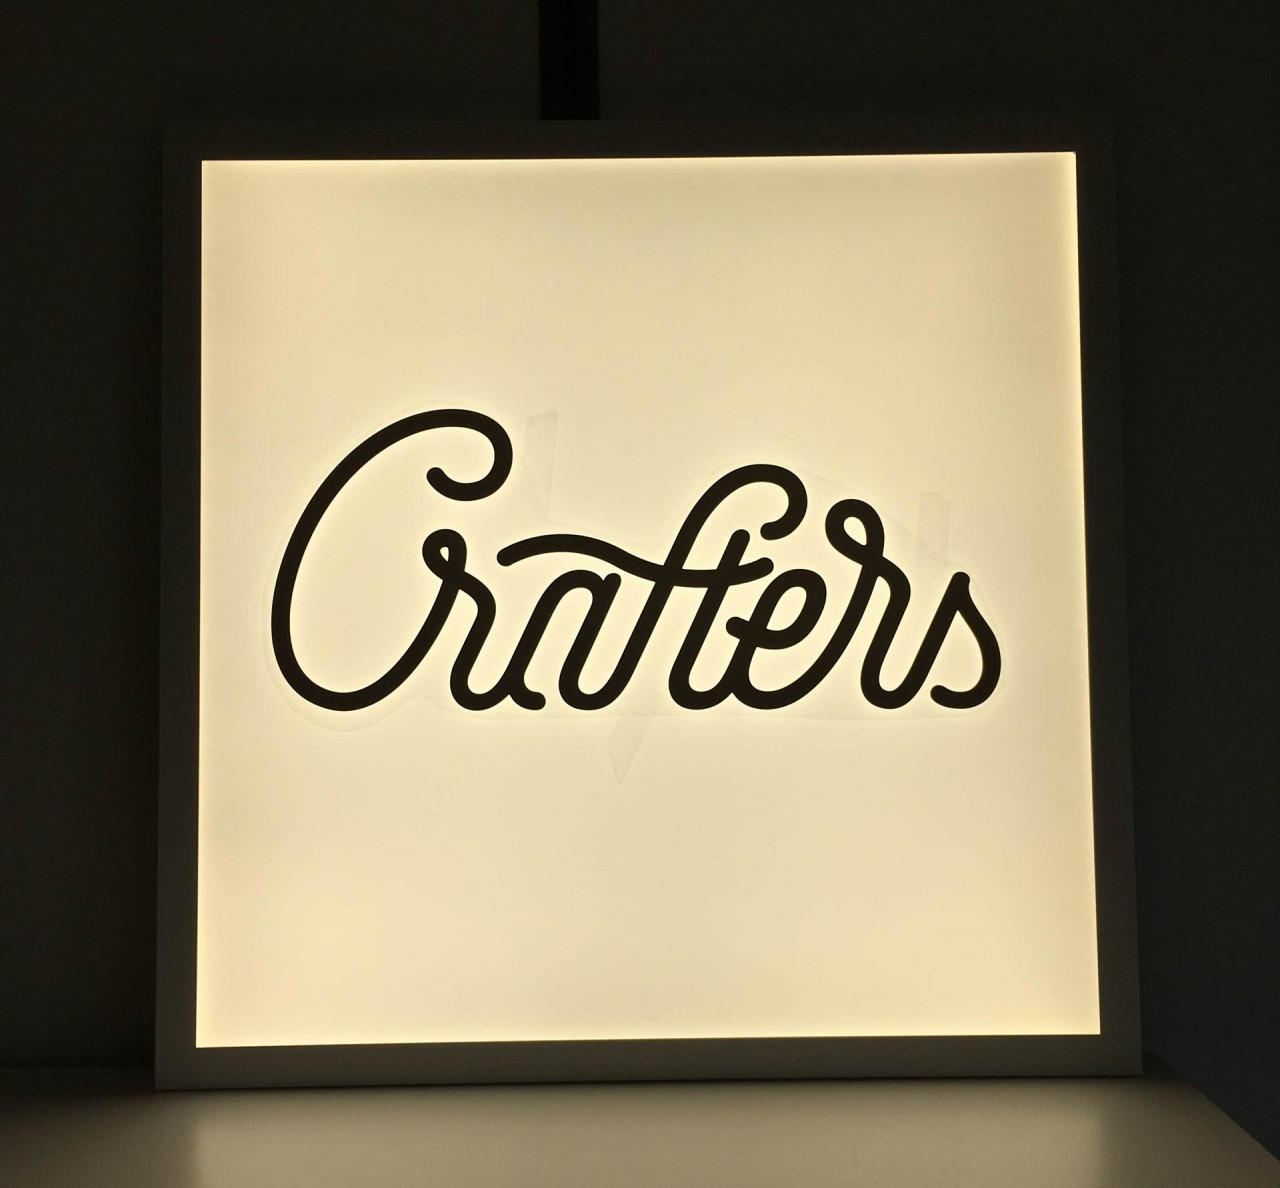 Le coup d'envoi Crafters